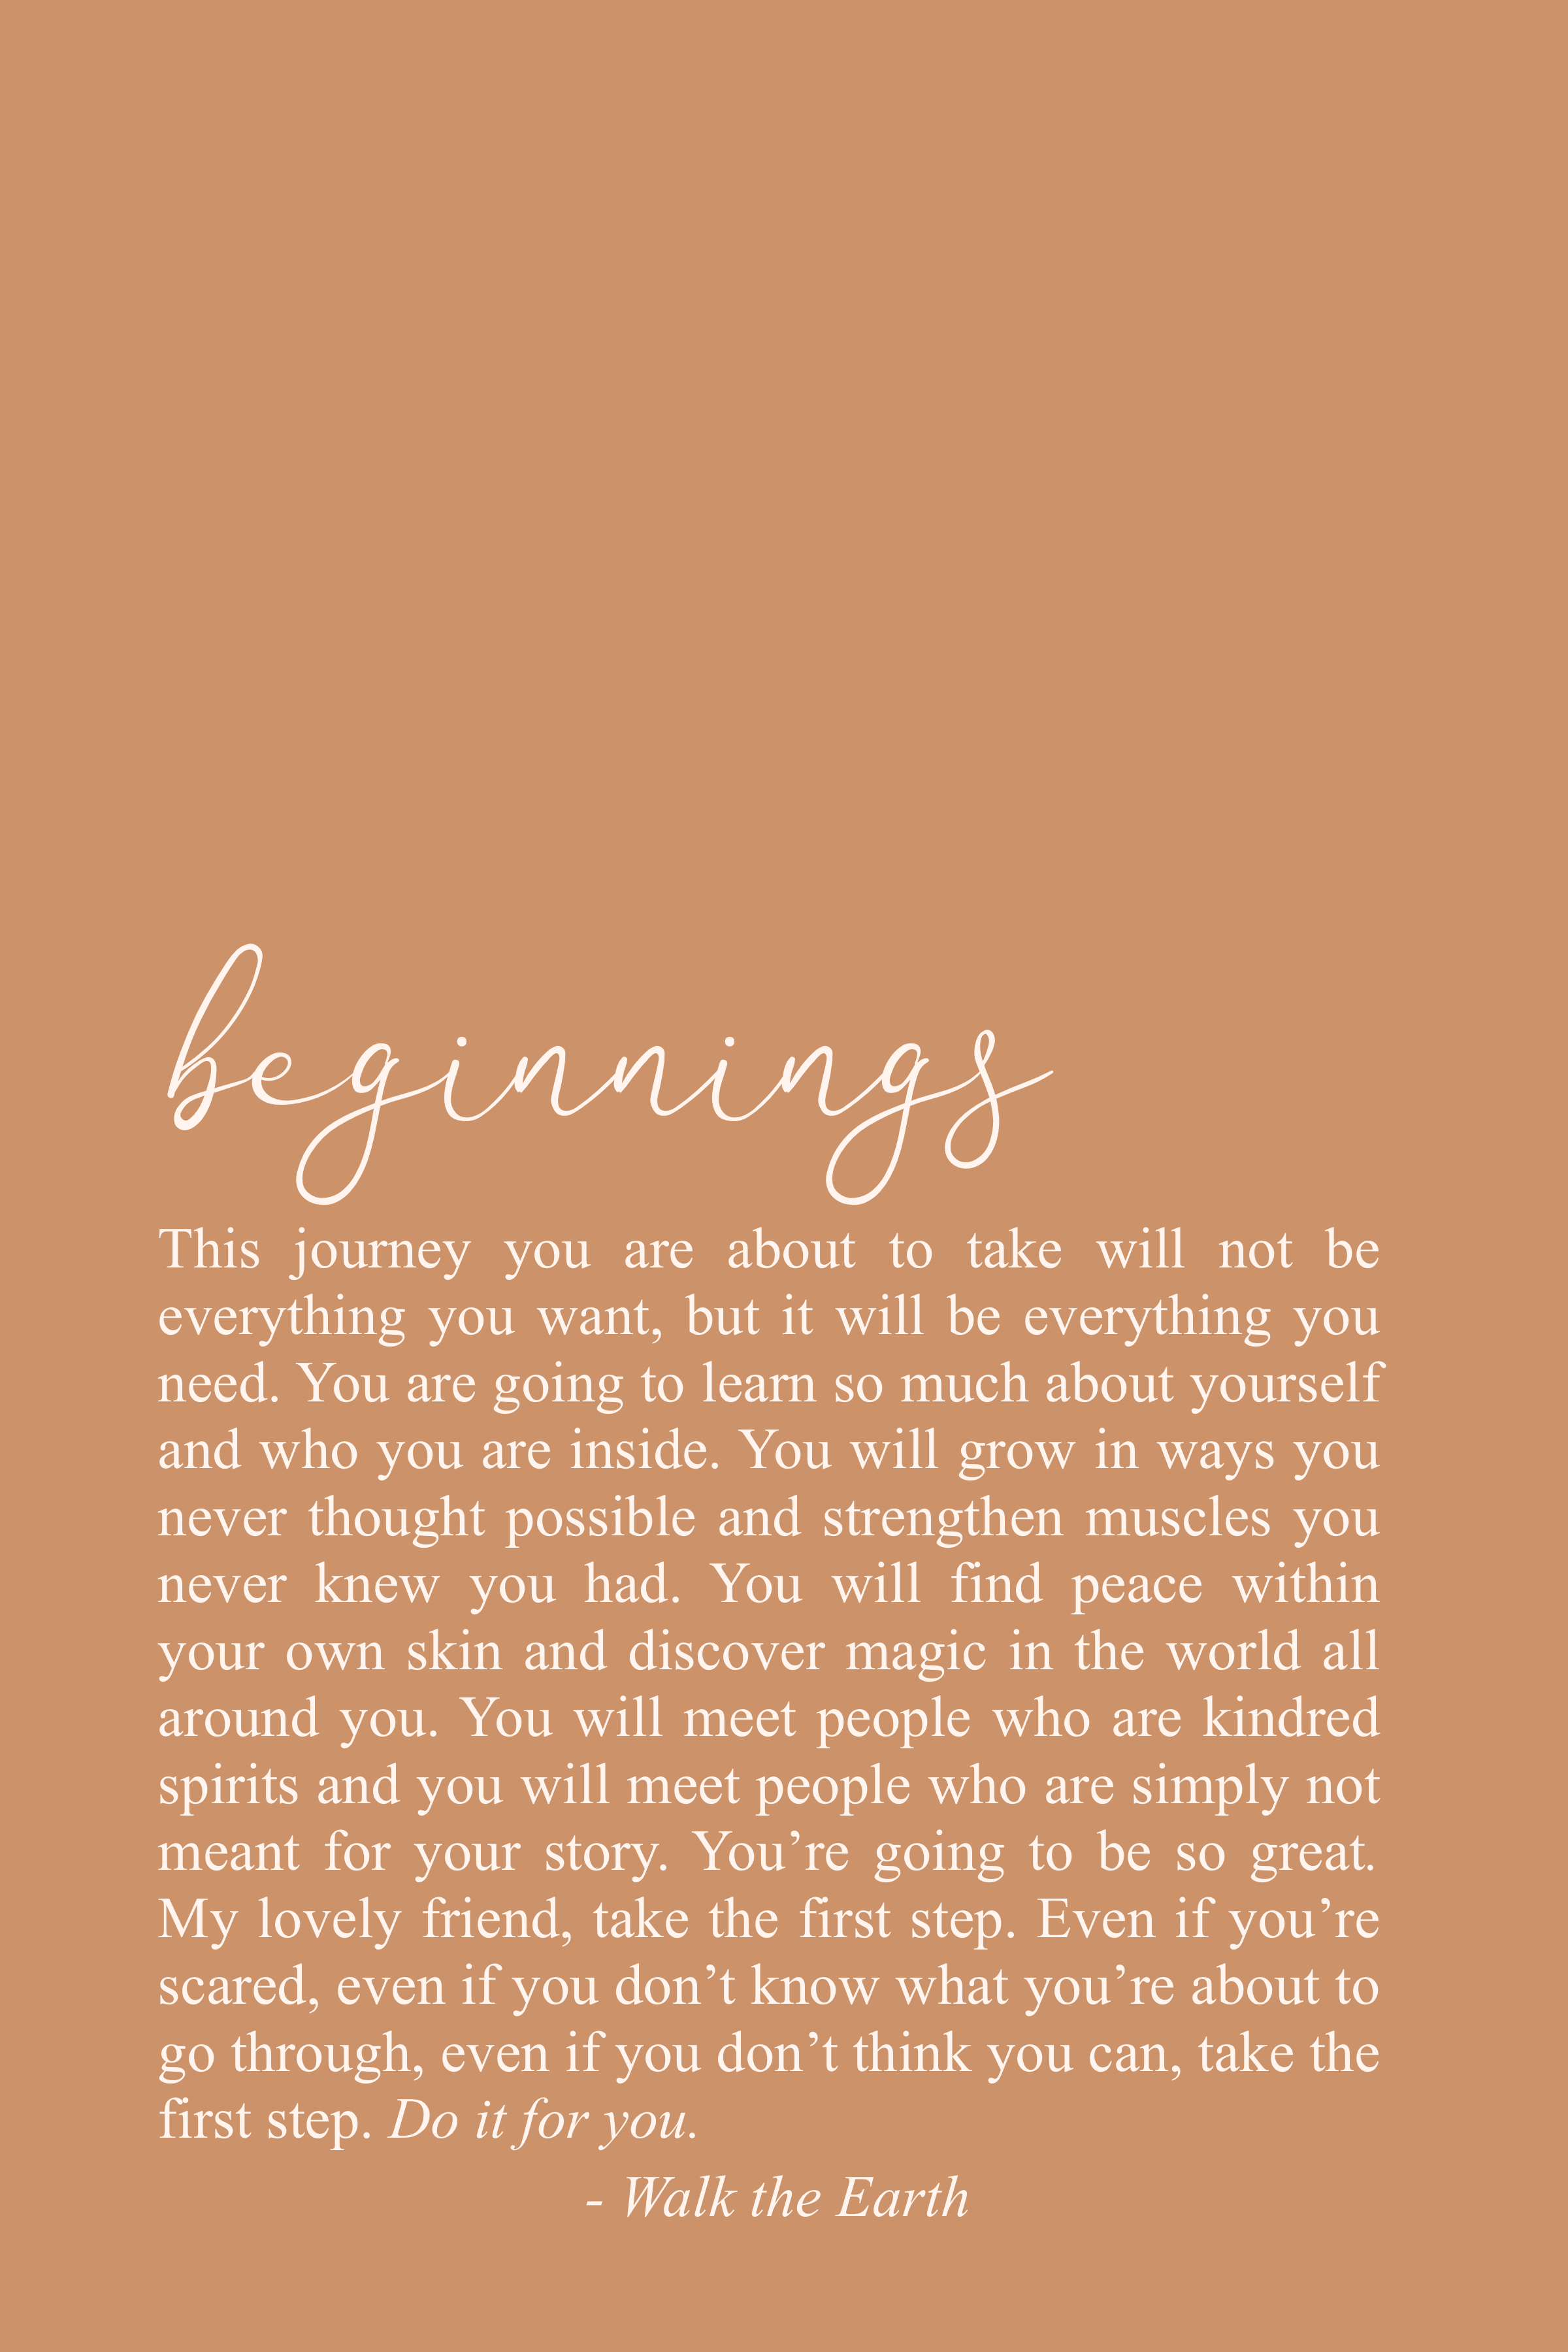 Beginnings, New Year, Inspirational Quotes, Be Brave, Inspiring Words & Poetry #quotesaboutstayingpositive